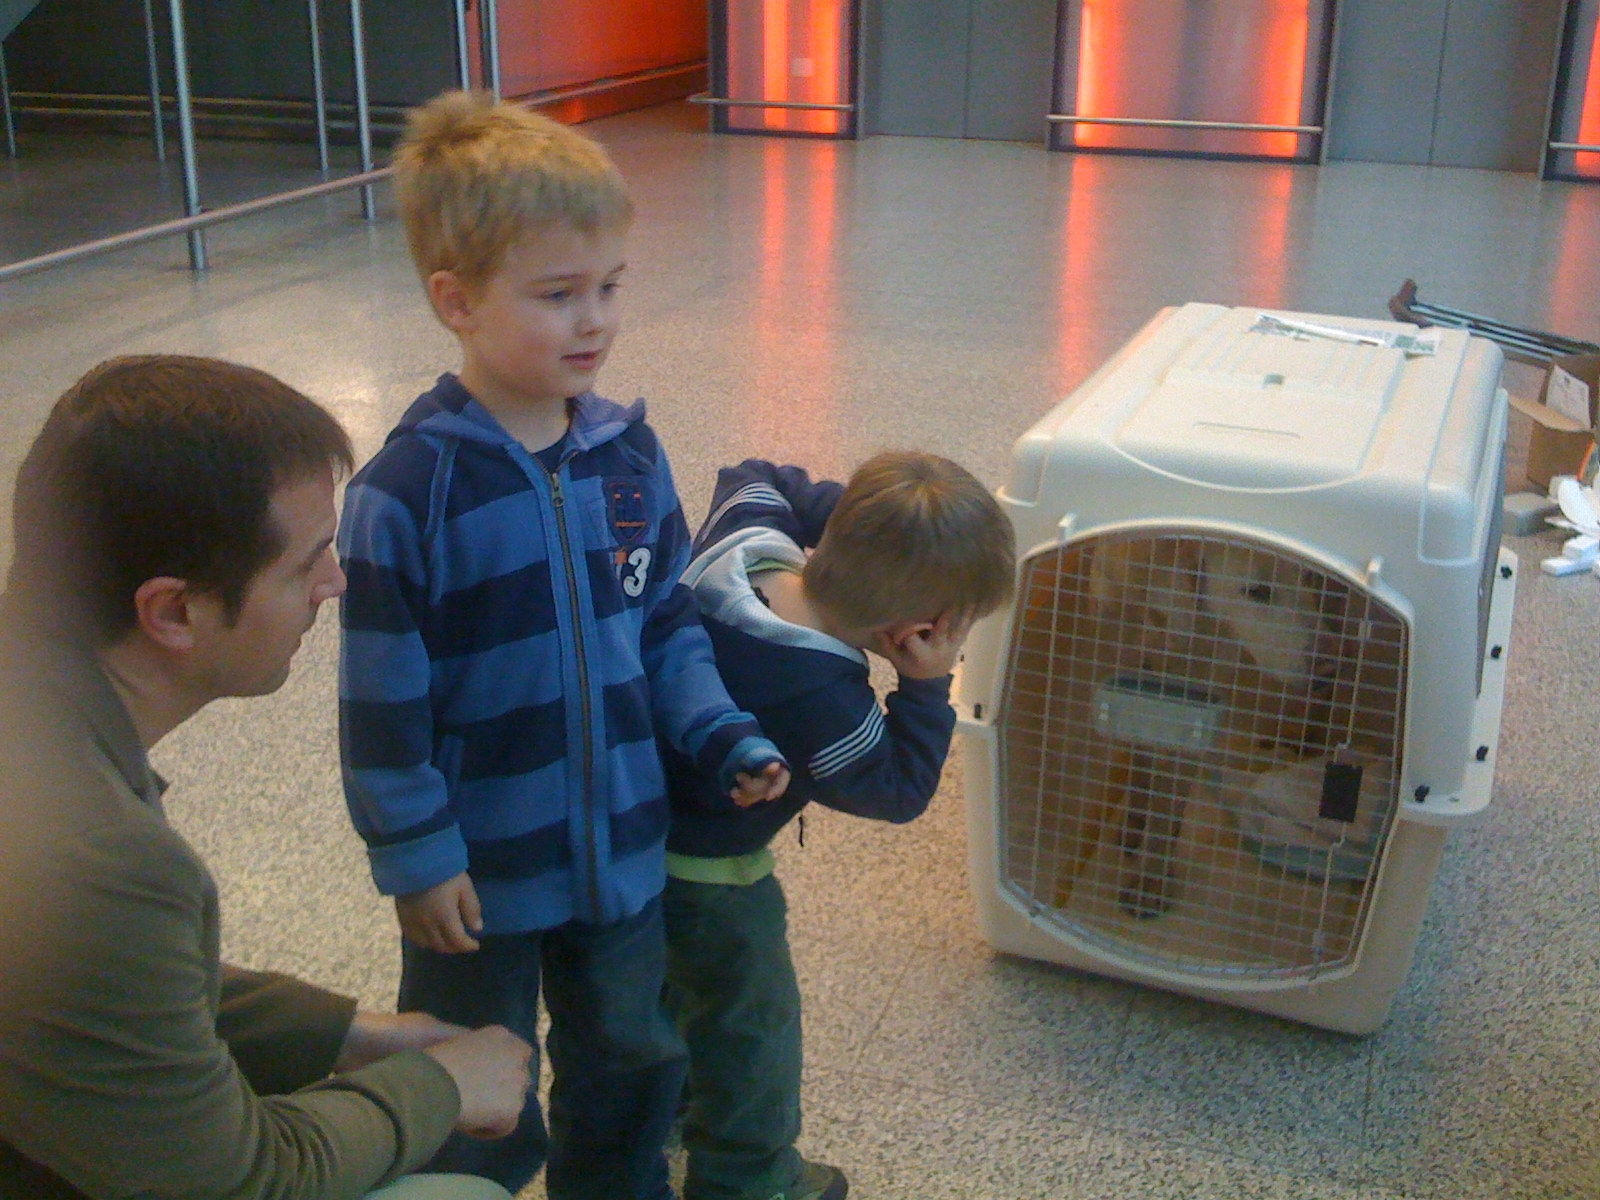 The hounds drew curious crowds and made new friends at Heathrow. Okay, yes, one of them was a little loud!